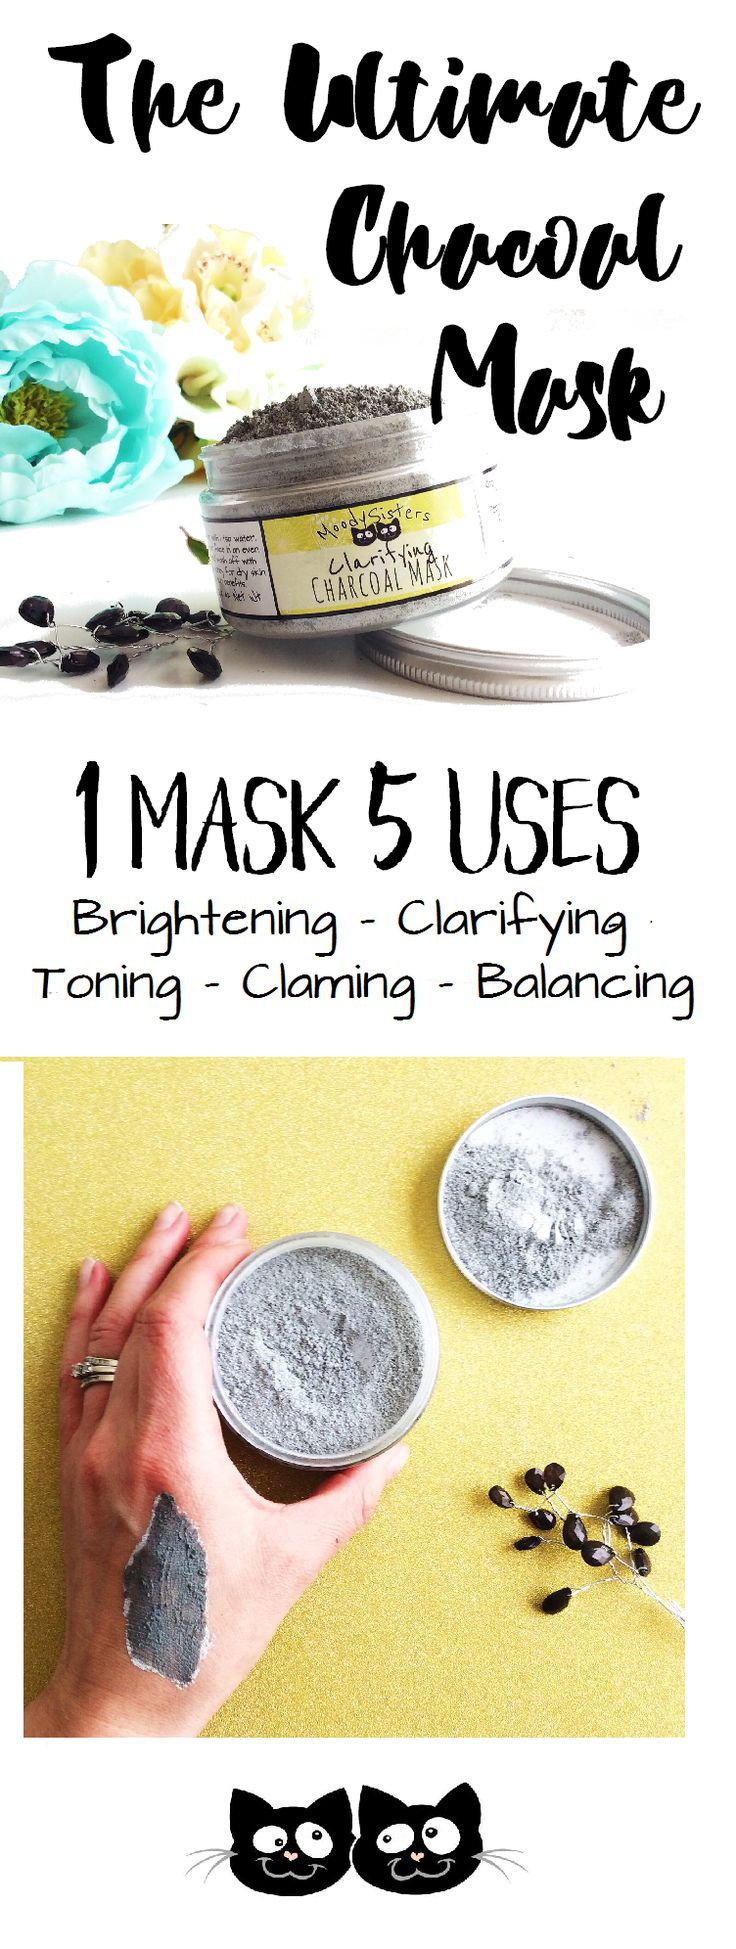 One mask. 5 Uses. Combine it with any liquid to customize it's clarifying power for your skin type and need.  ake charge of your moody skin with this multi-use charcoal mask perfect for any skin type. You can clarify, nourish and detoxify in one simple step when you mix with water OR for even more benefits, you can use your mask with other skin loving ingredients for an extra boost.  #beauty #mask #charcoal http://www.moodysisters.com/store/charcoal